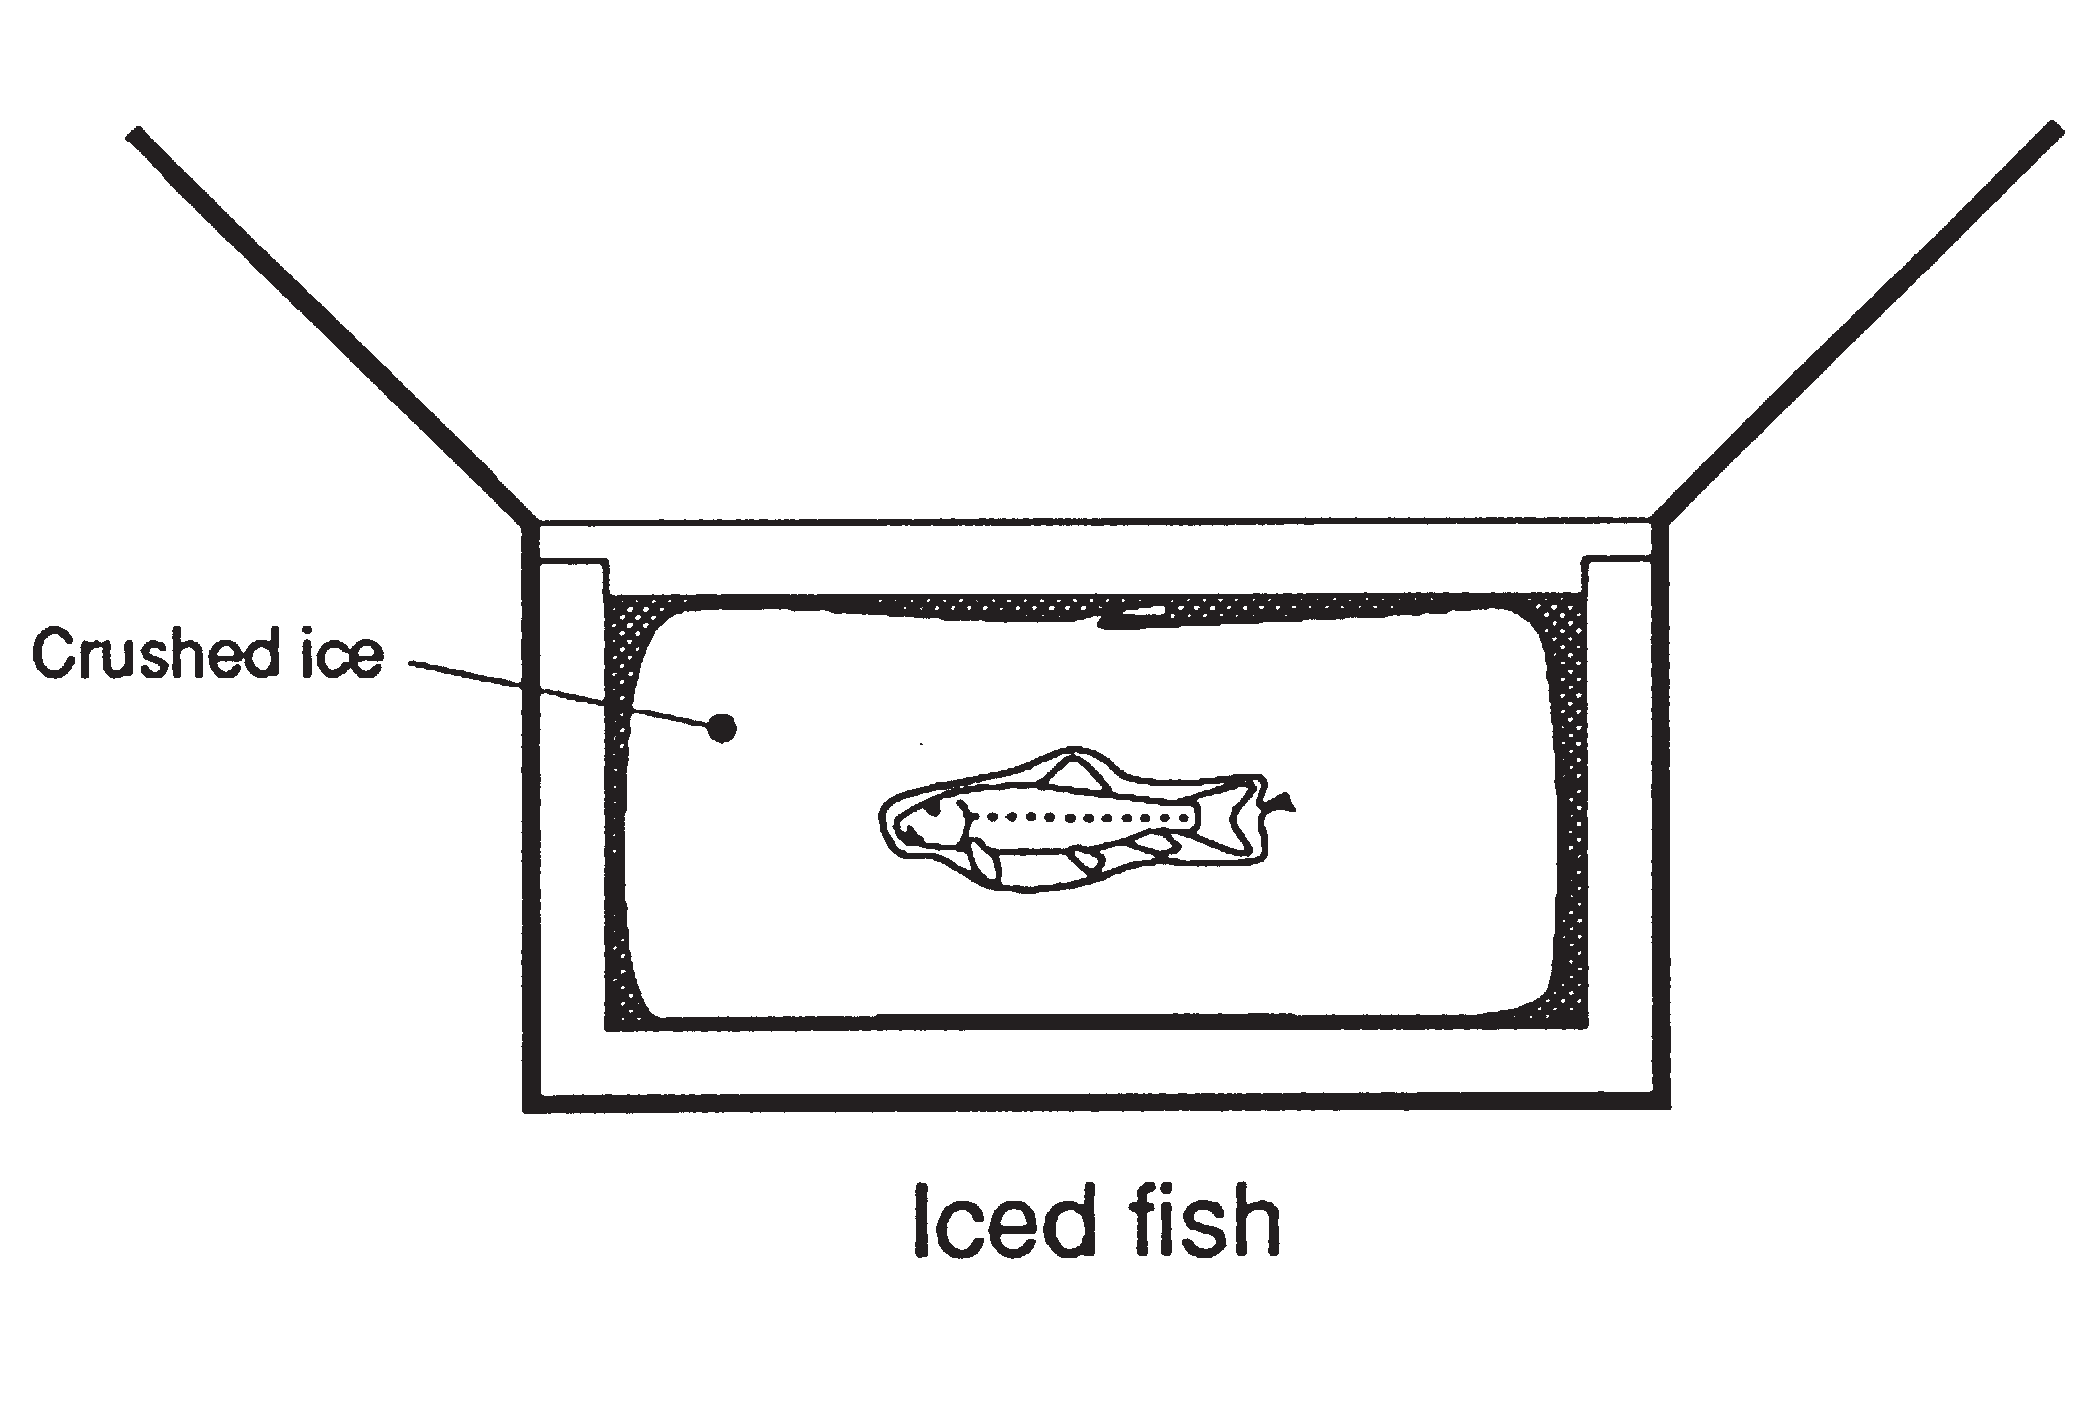 General fish health management info cornell university college diagram of how to package a fish sample on ice pooptronica